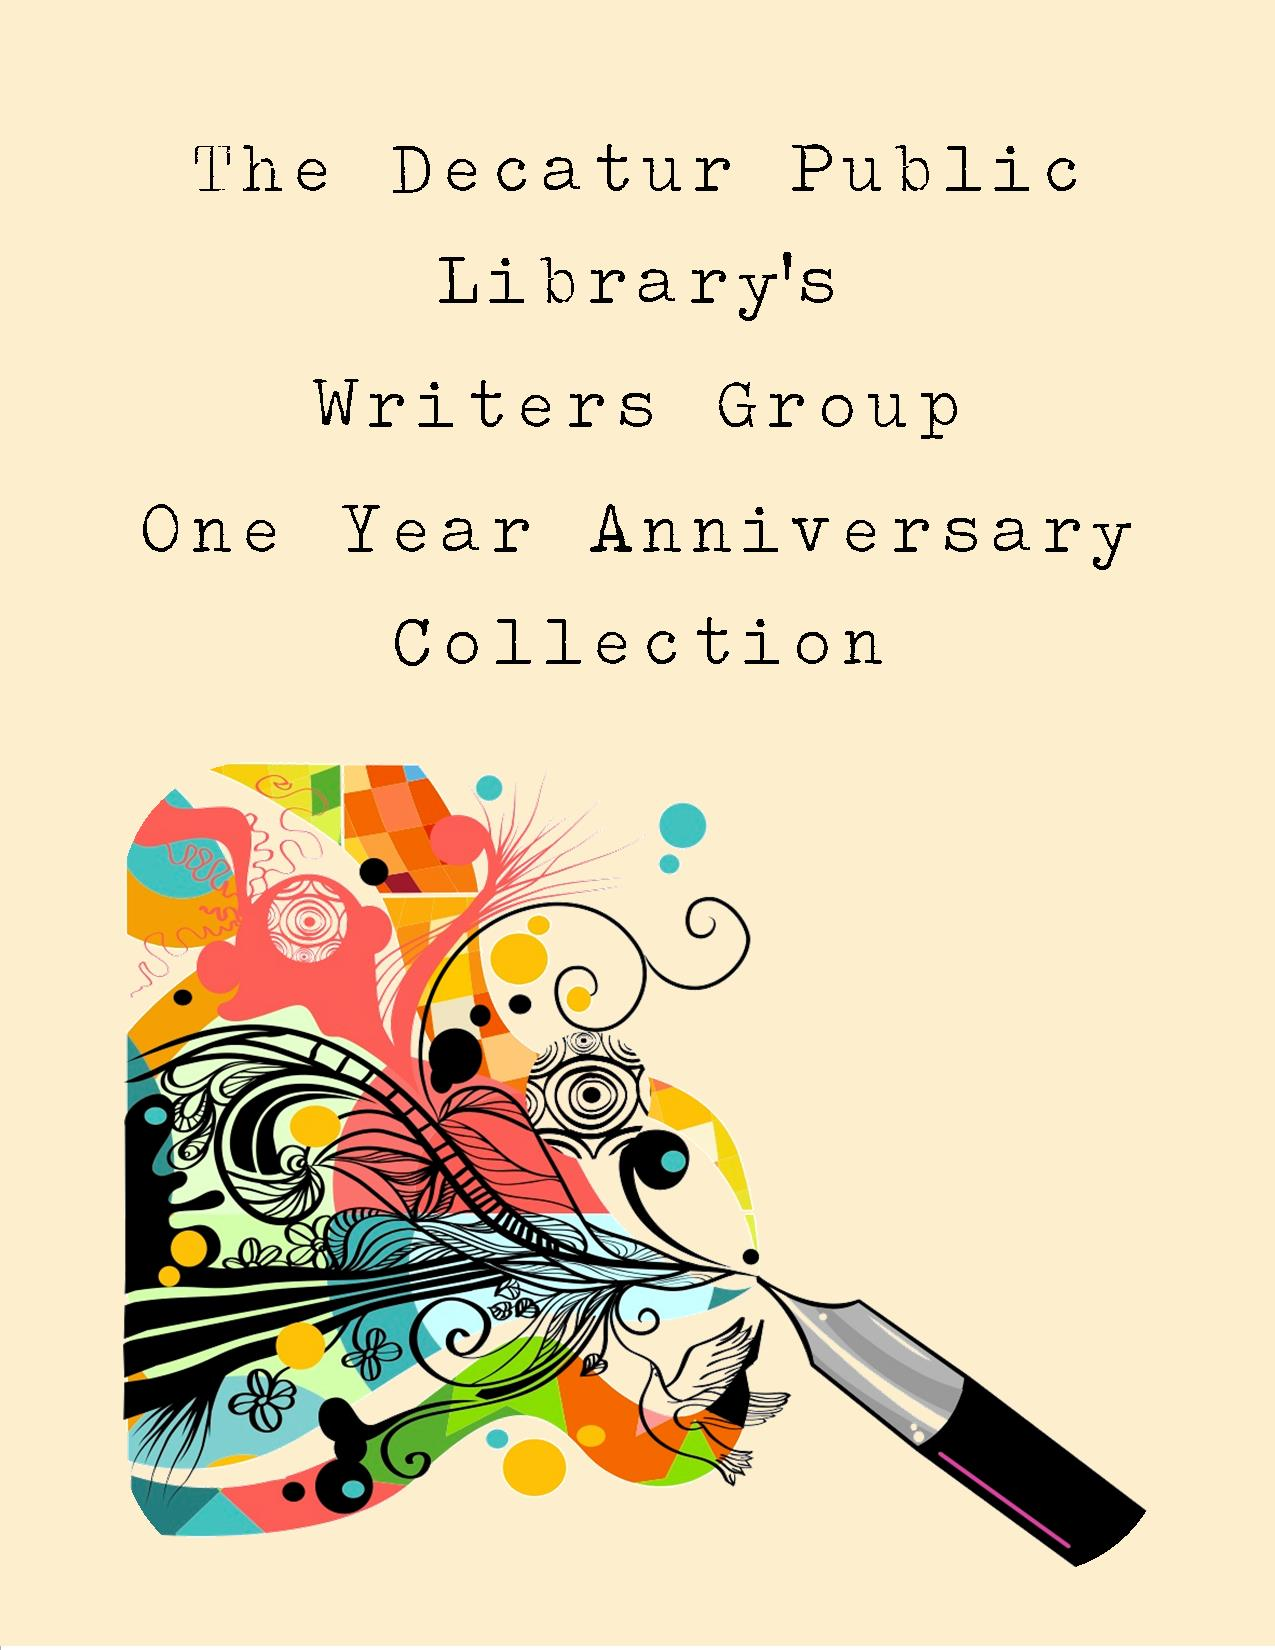 Decatur Public Librarys Writers Group 1 year collection